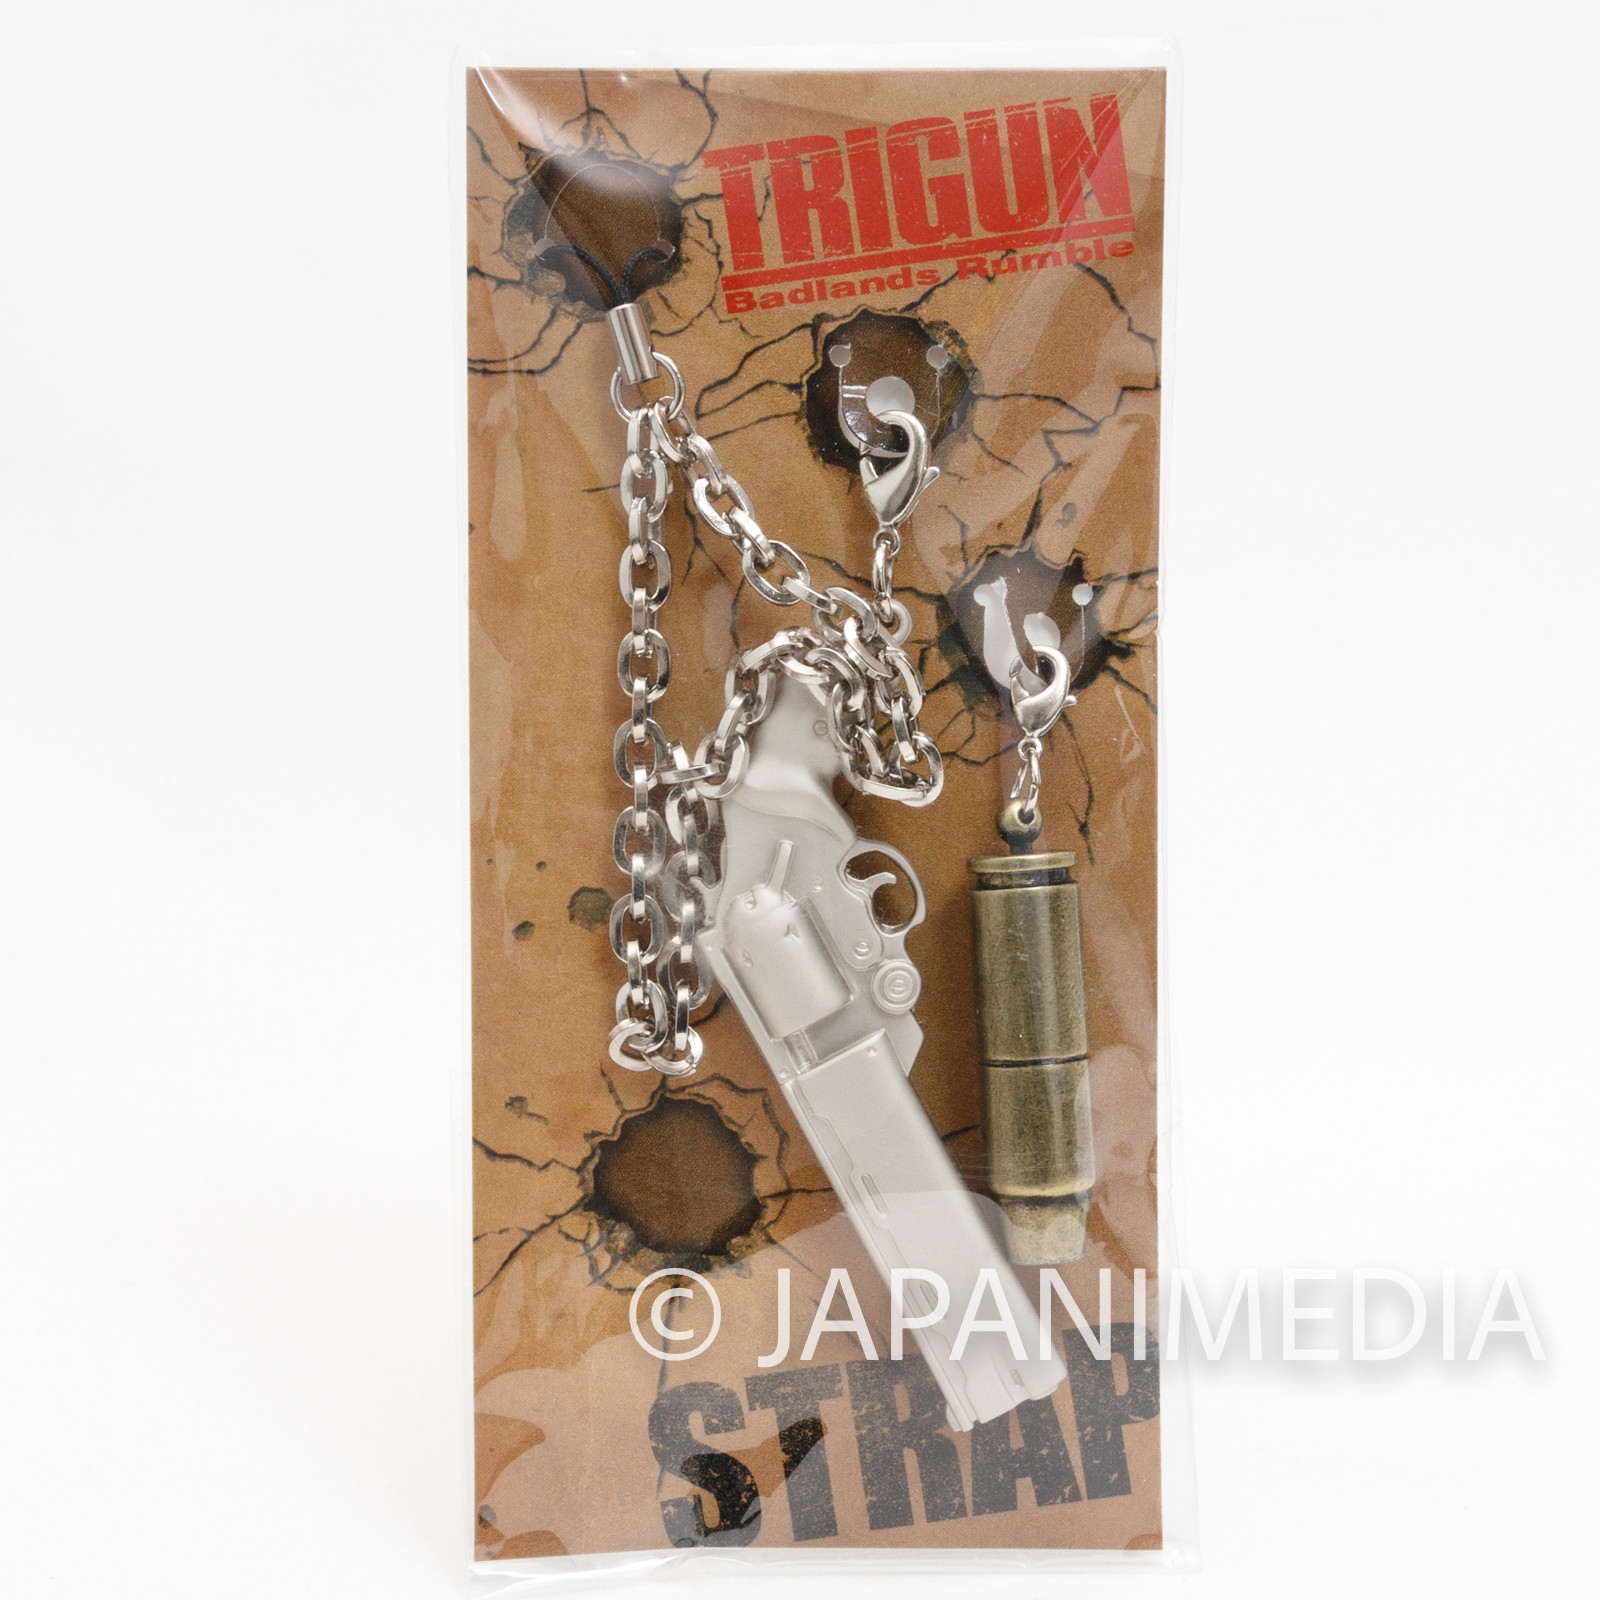 TRIGUN Badlands Rumble Vash's Gun Figure Keychain Strap JAPAN ANIME